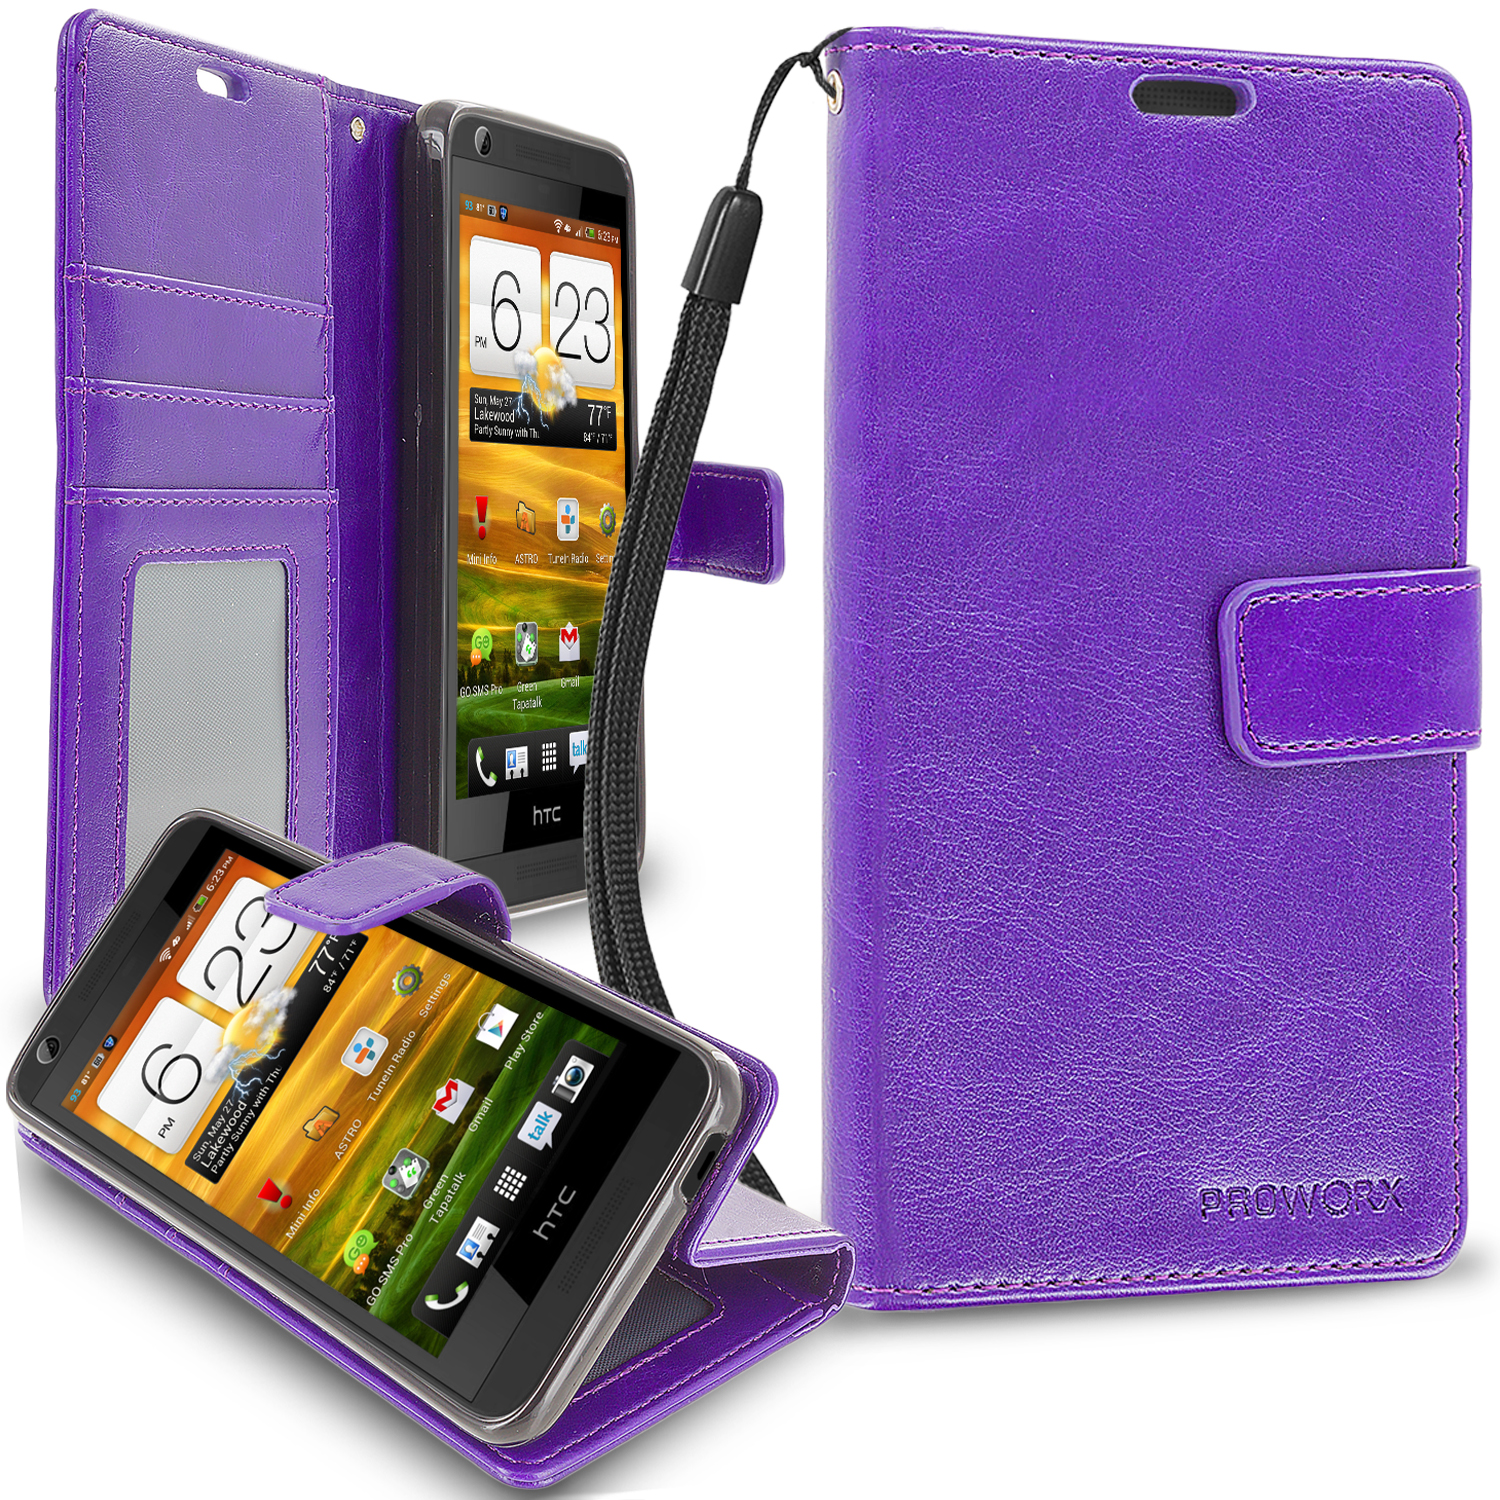 HTC Desire 626 / 626s Purple ProWorx Wallet Case Luxury PU Leather Case Cover With Card Slots & Stand